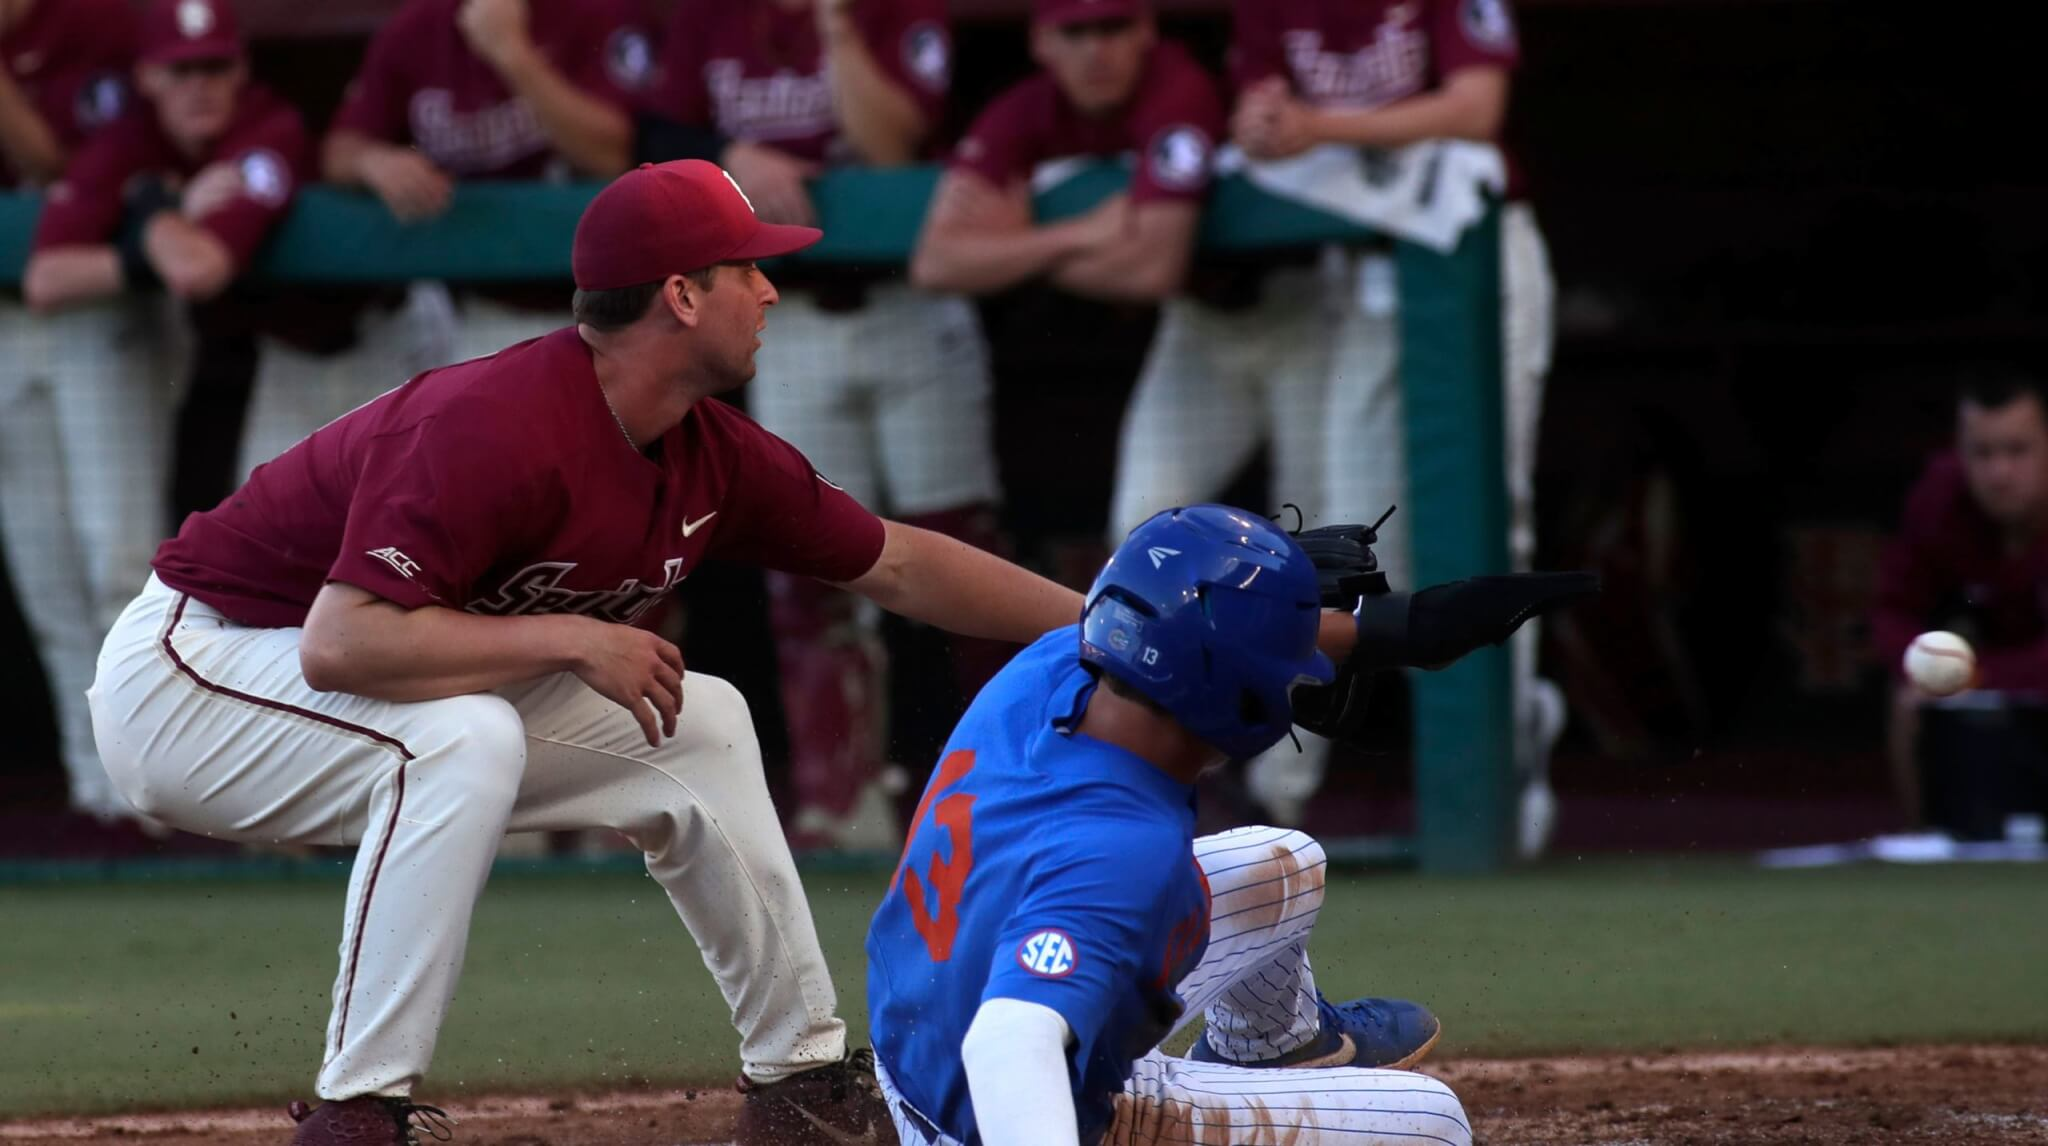 Florida-FSU baseball rivalry